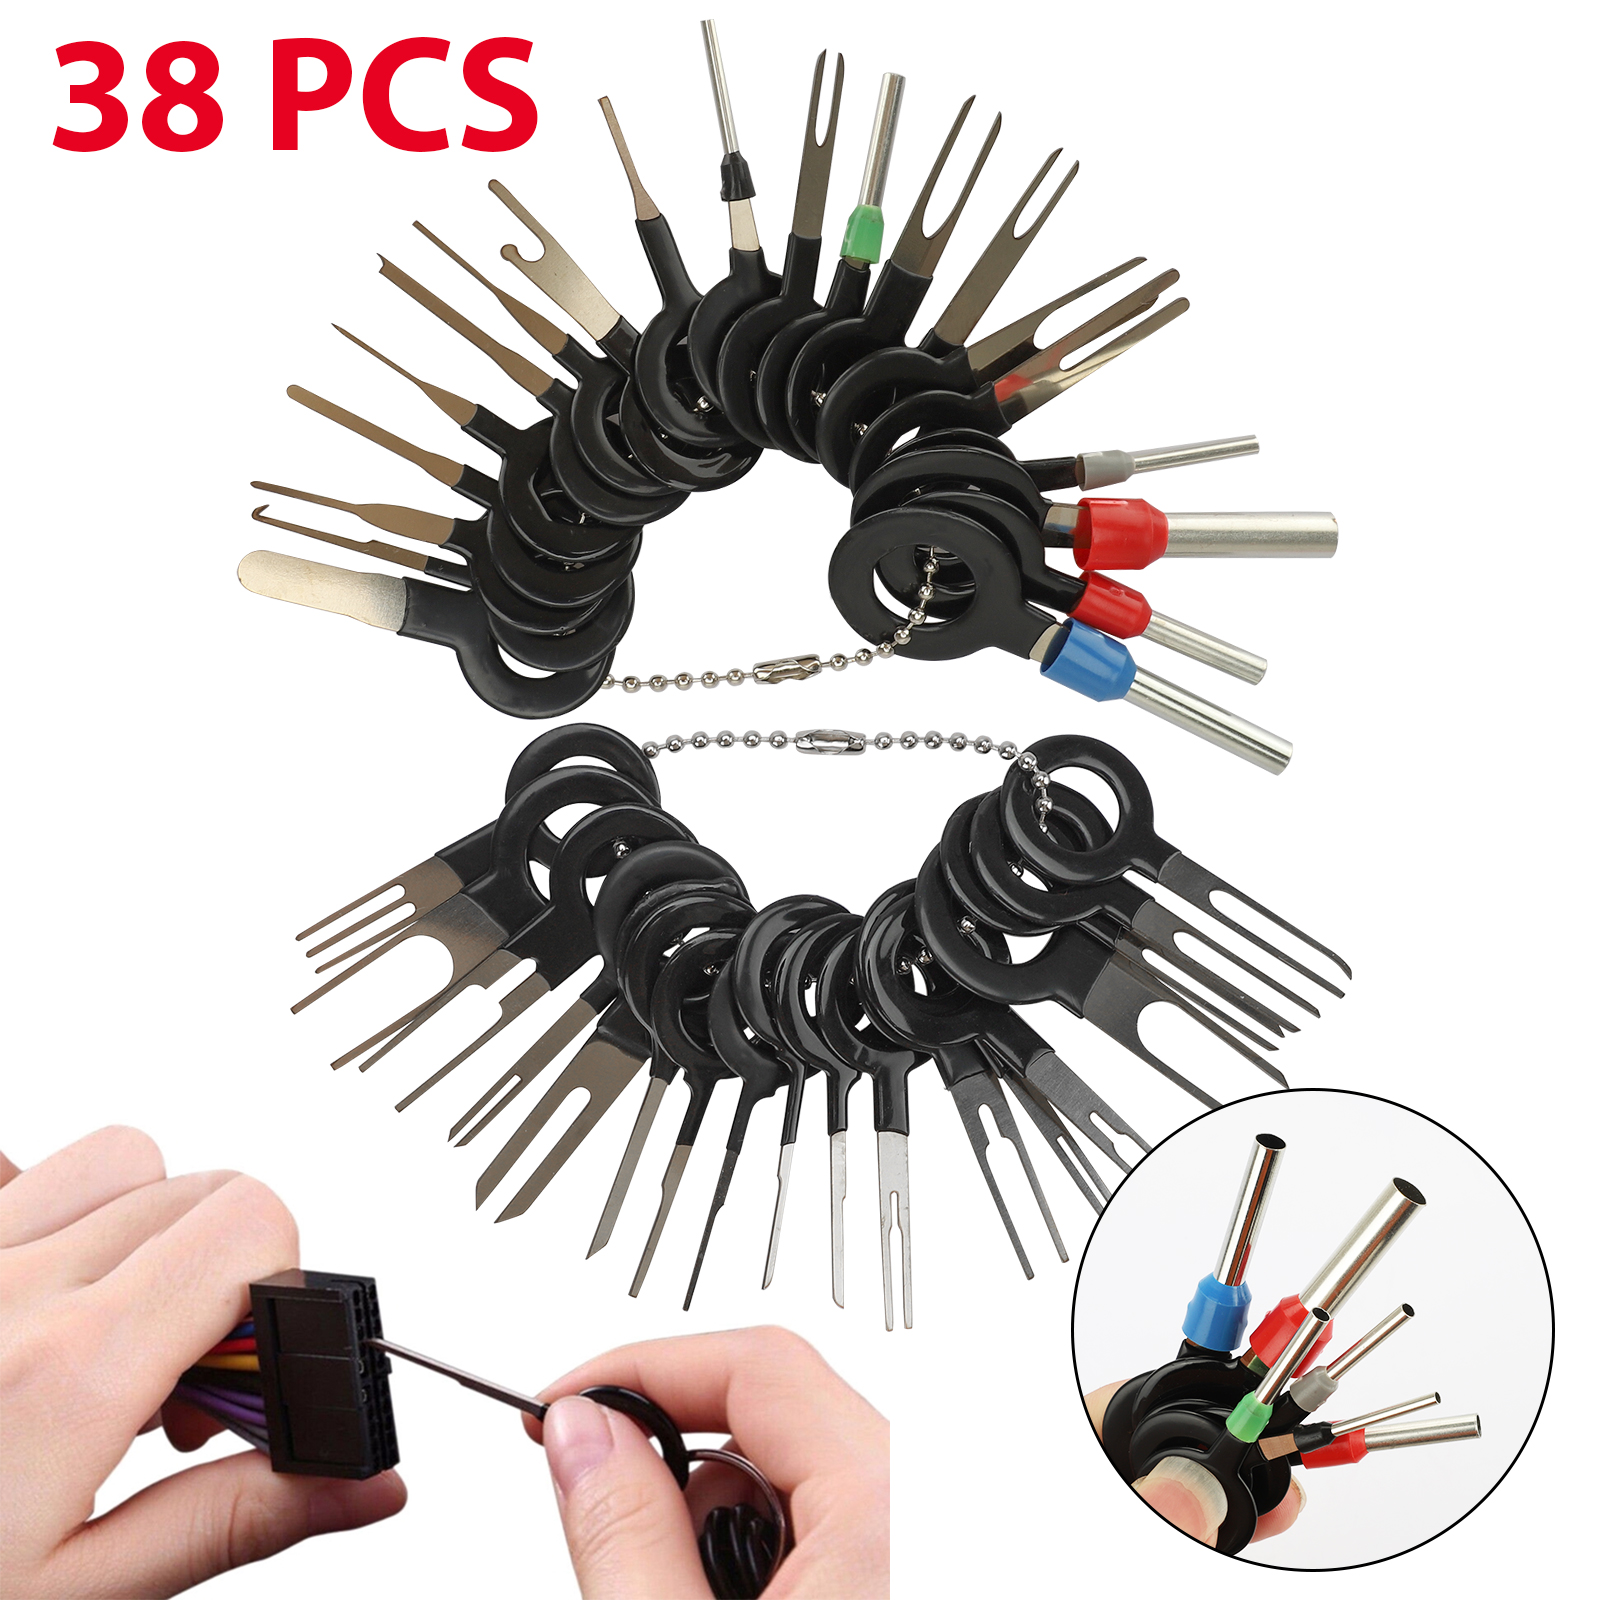 18x ATV Electrical Wiring Connector Removal Kit Cable Pin Terminal Puller Tool